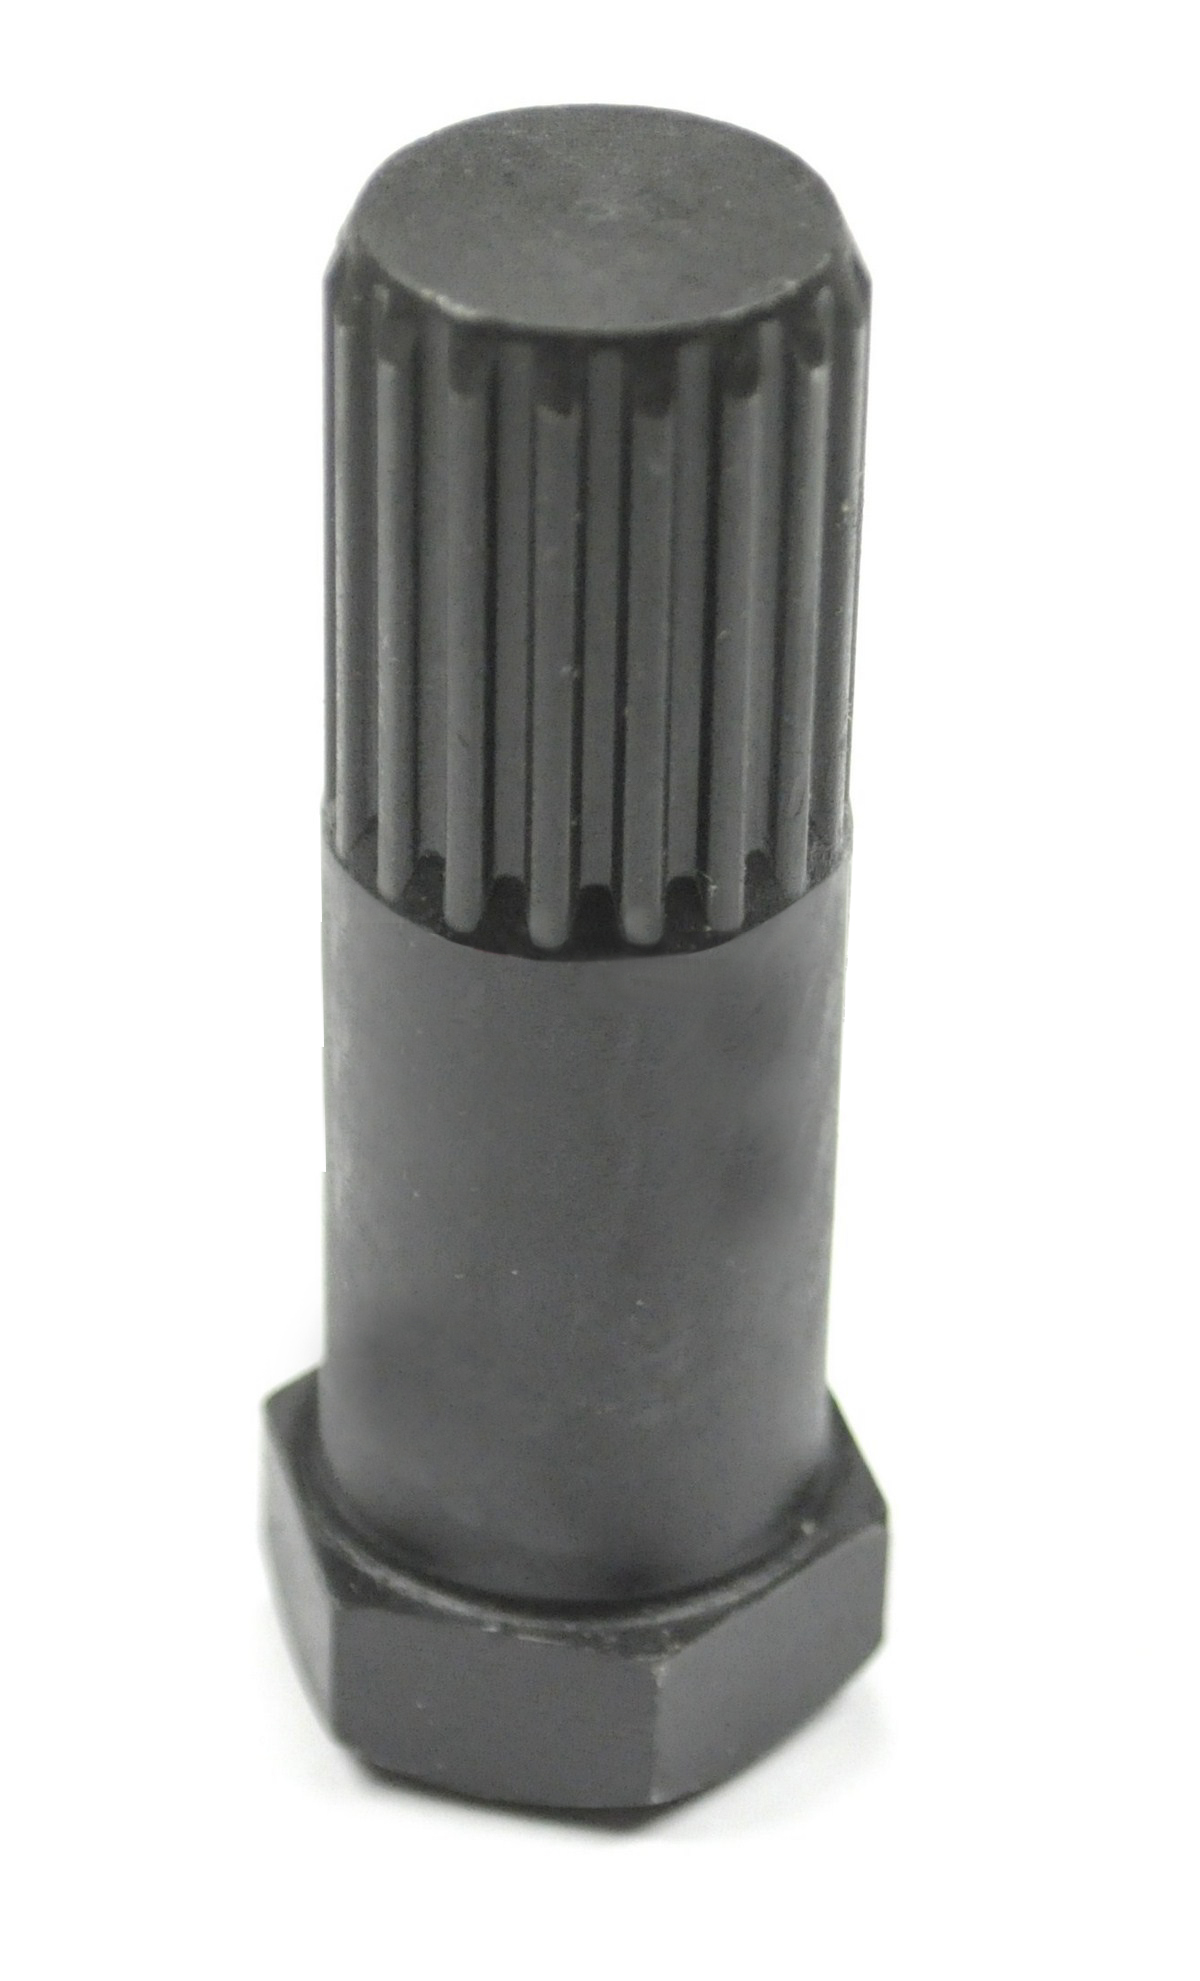 Details about Impeller Prop Removal Tool Sea Doo Spark Ace Ho All Models